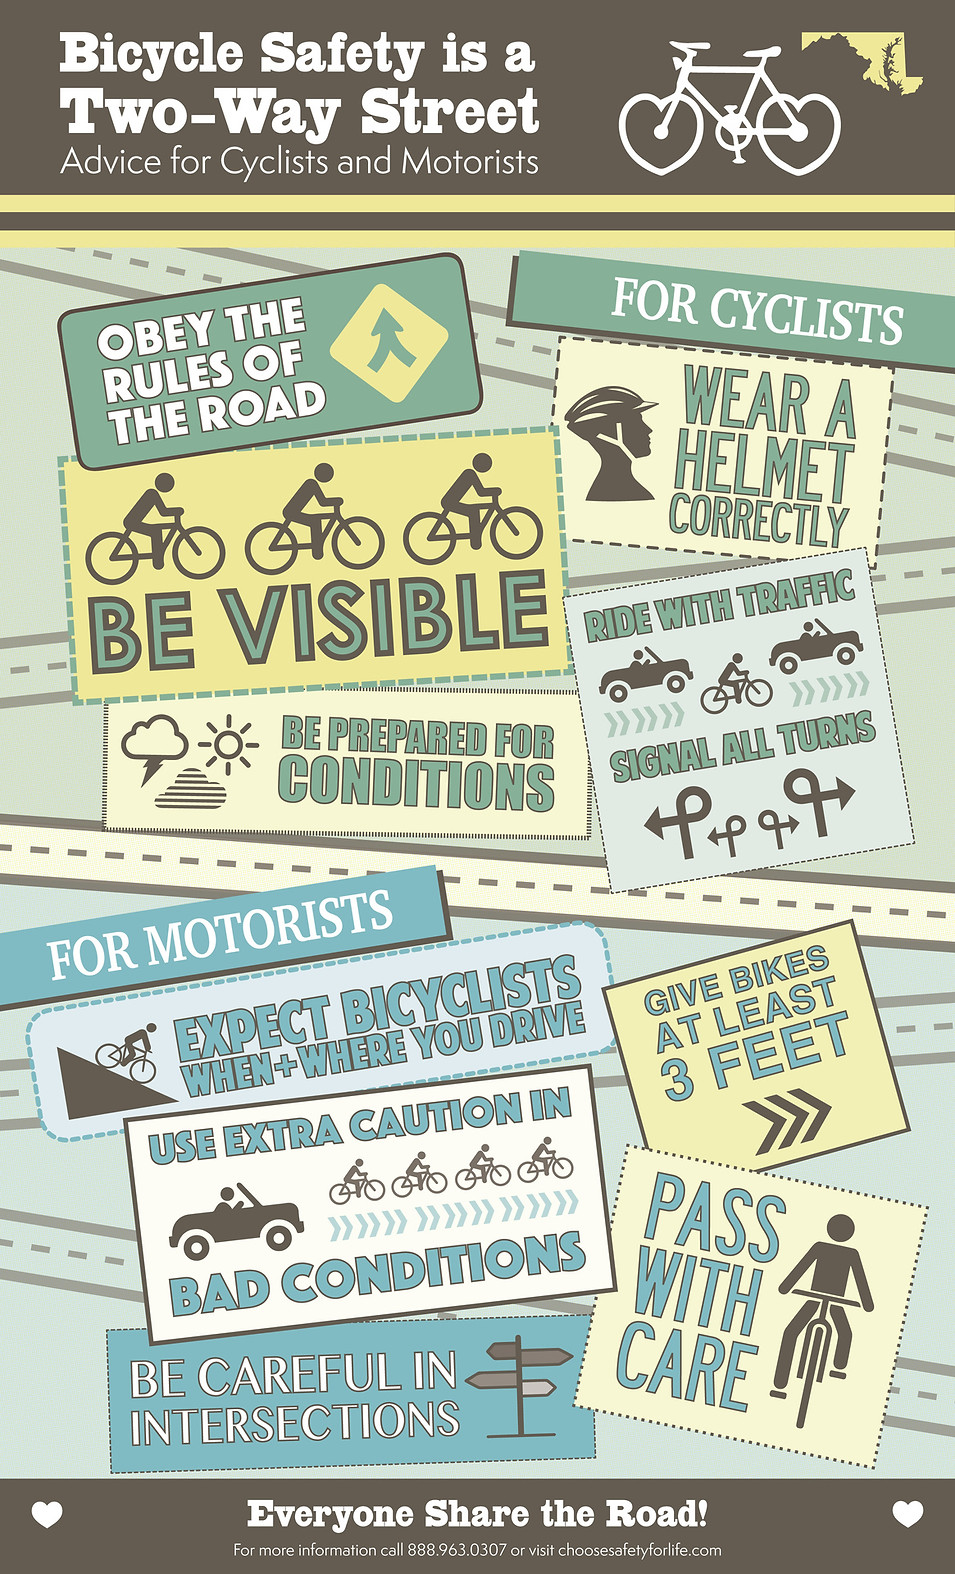 6-Color Bike Safety Infographic